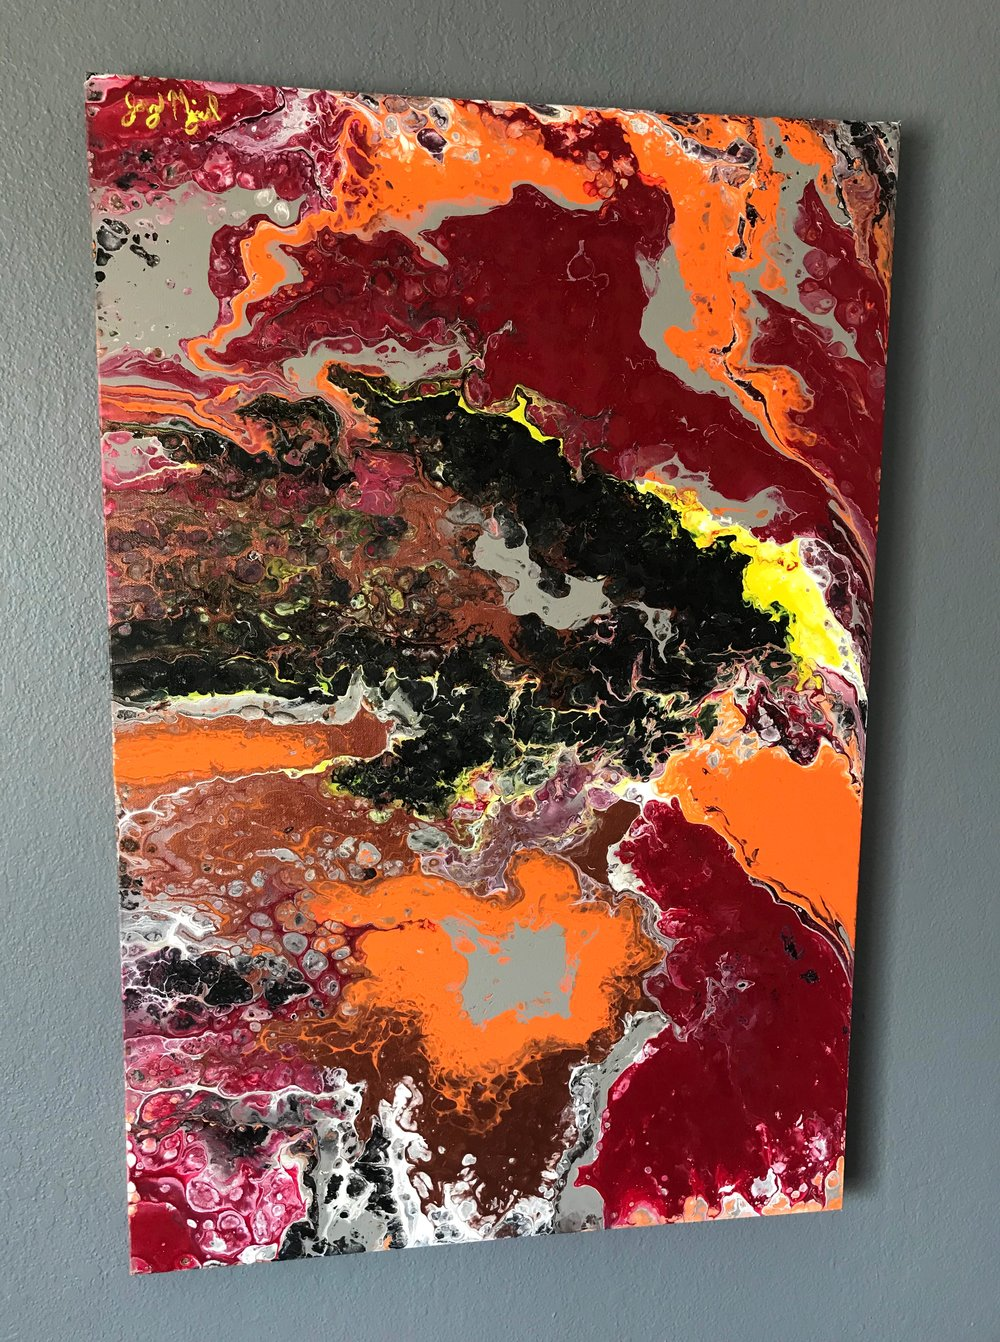 'IT'   36'' x 24''  Mixed Media on Canvas  $400